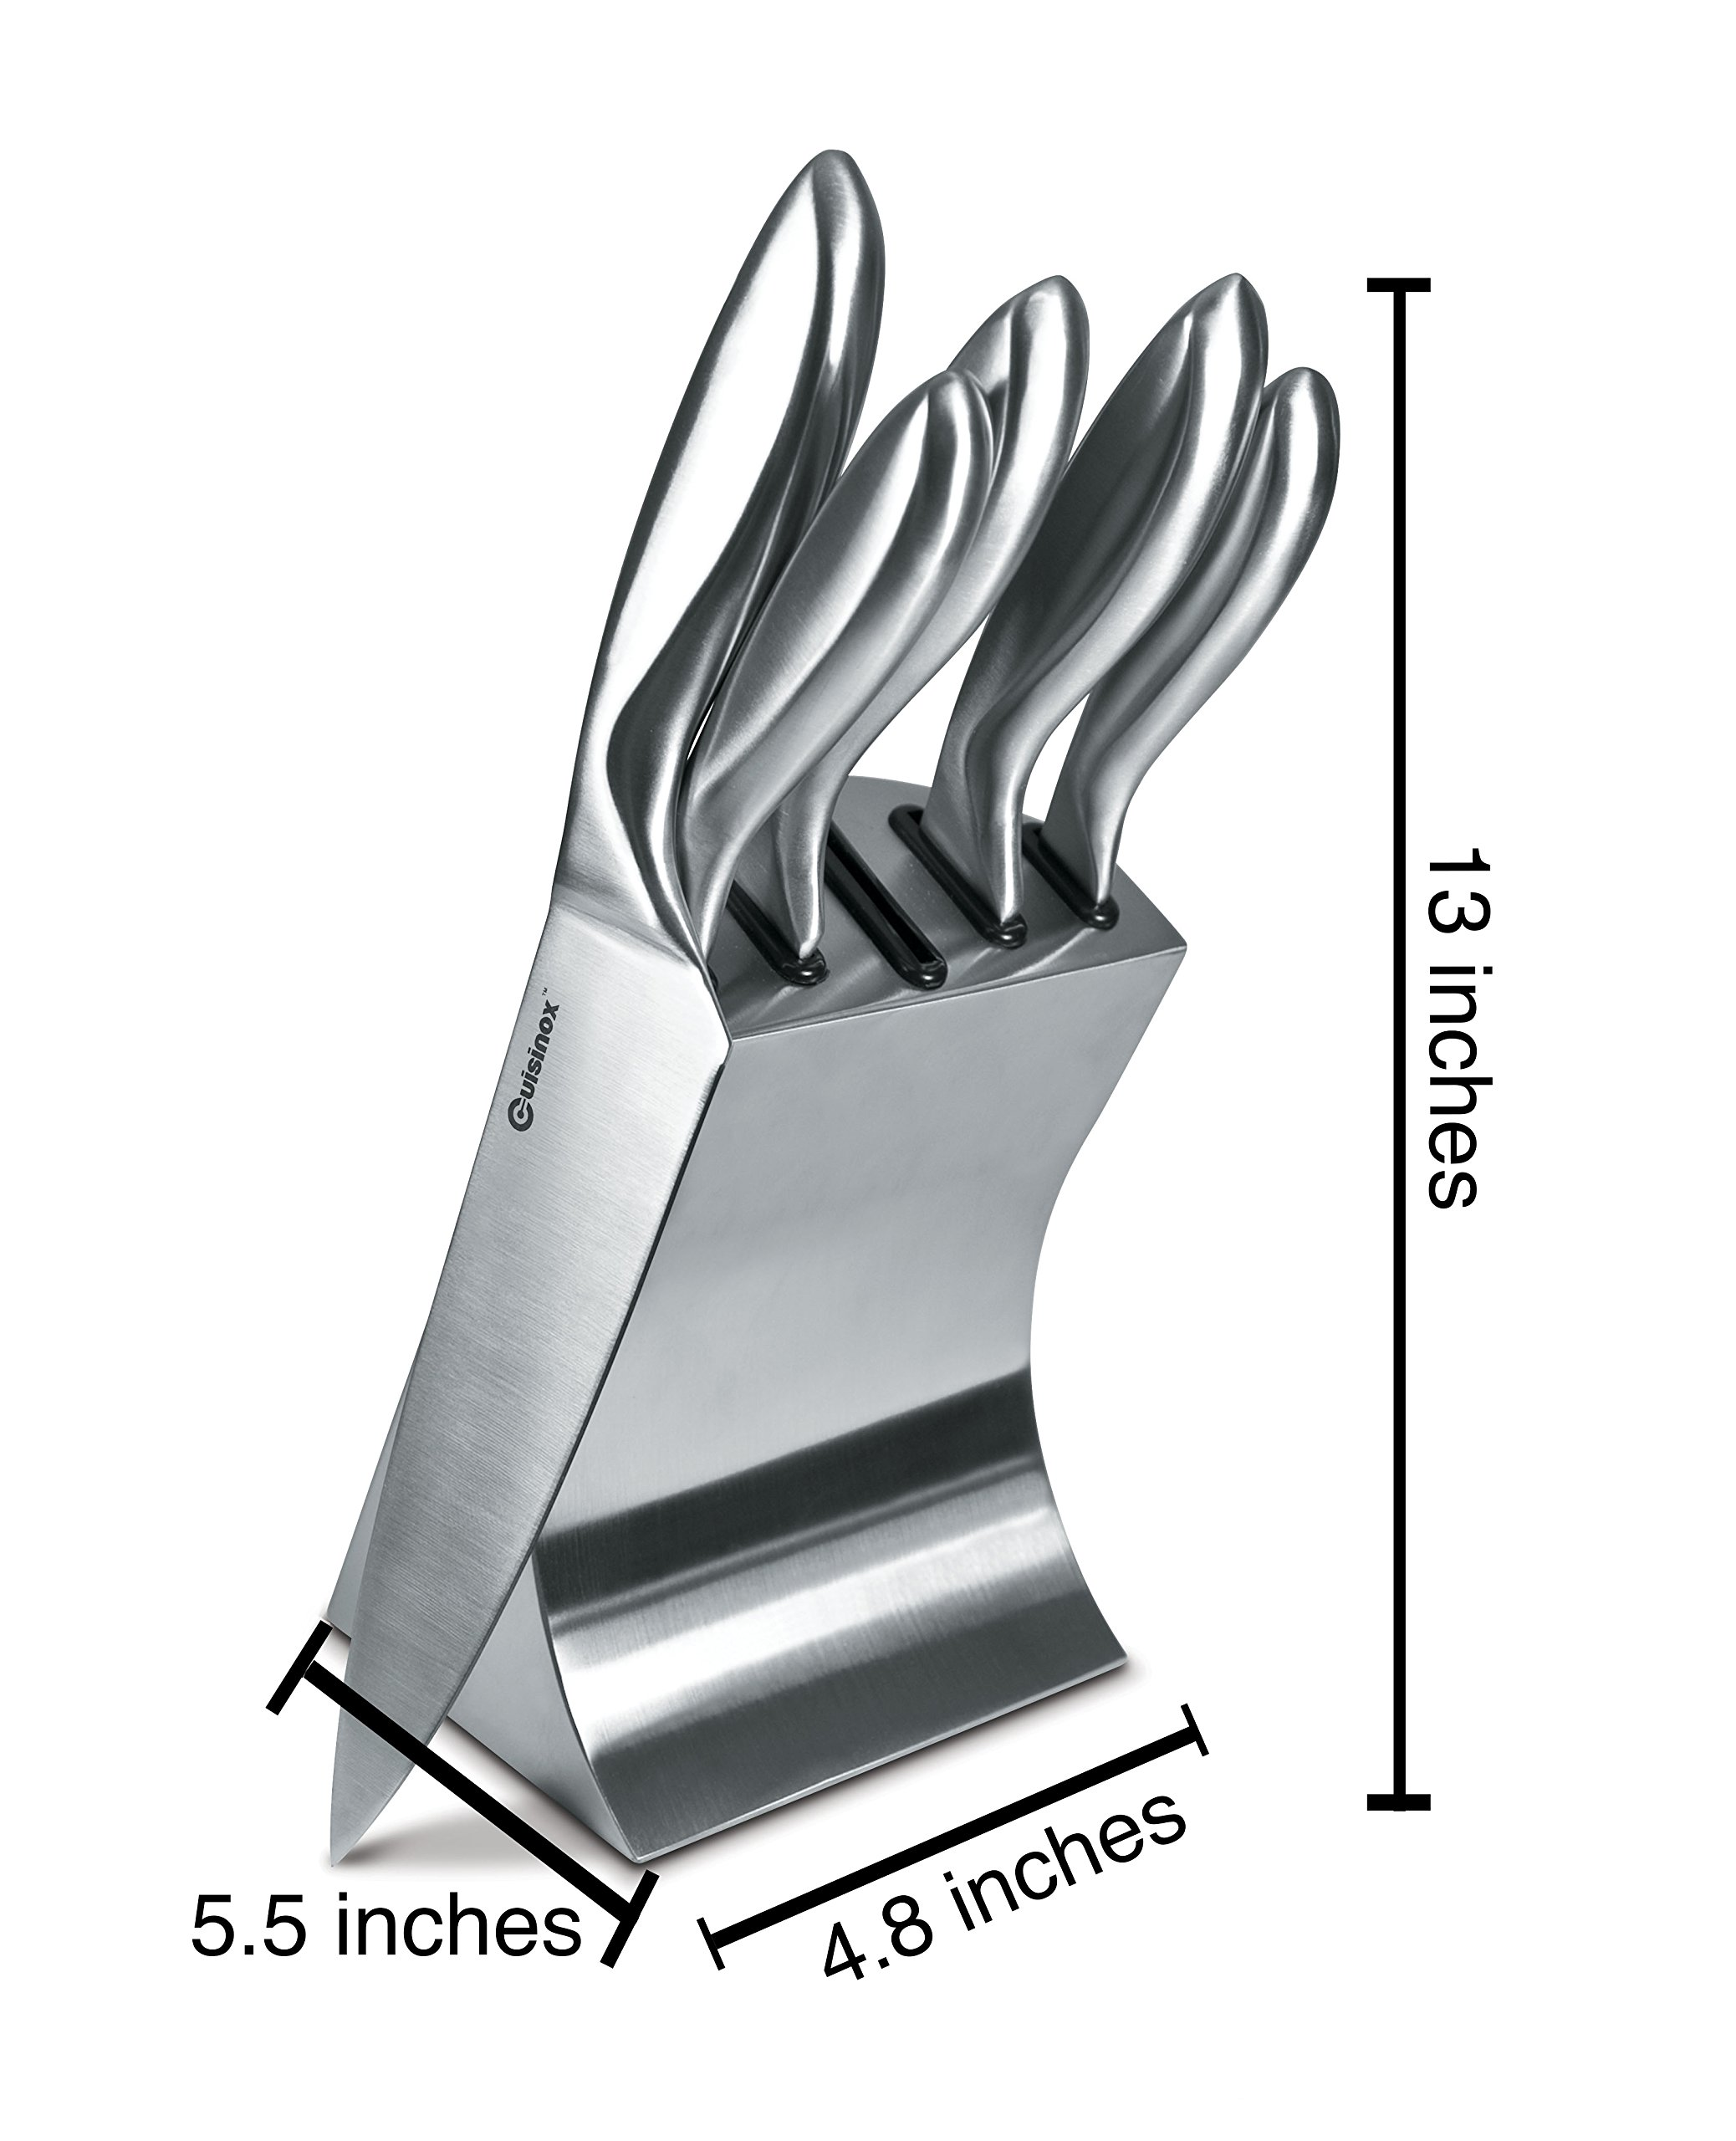 Cuisinox 6 Piece Stainless Steel Kitchen Utility Knife Set by Cuisinox (Image #2)